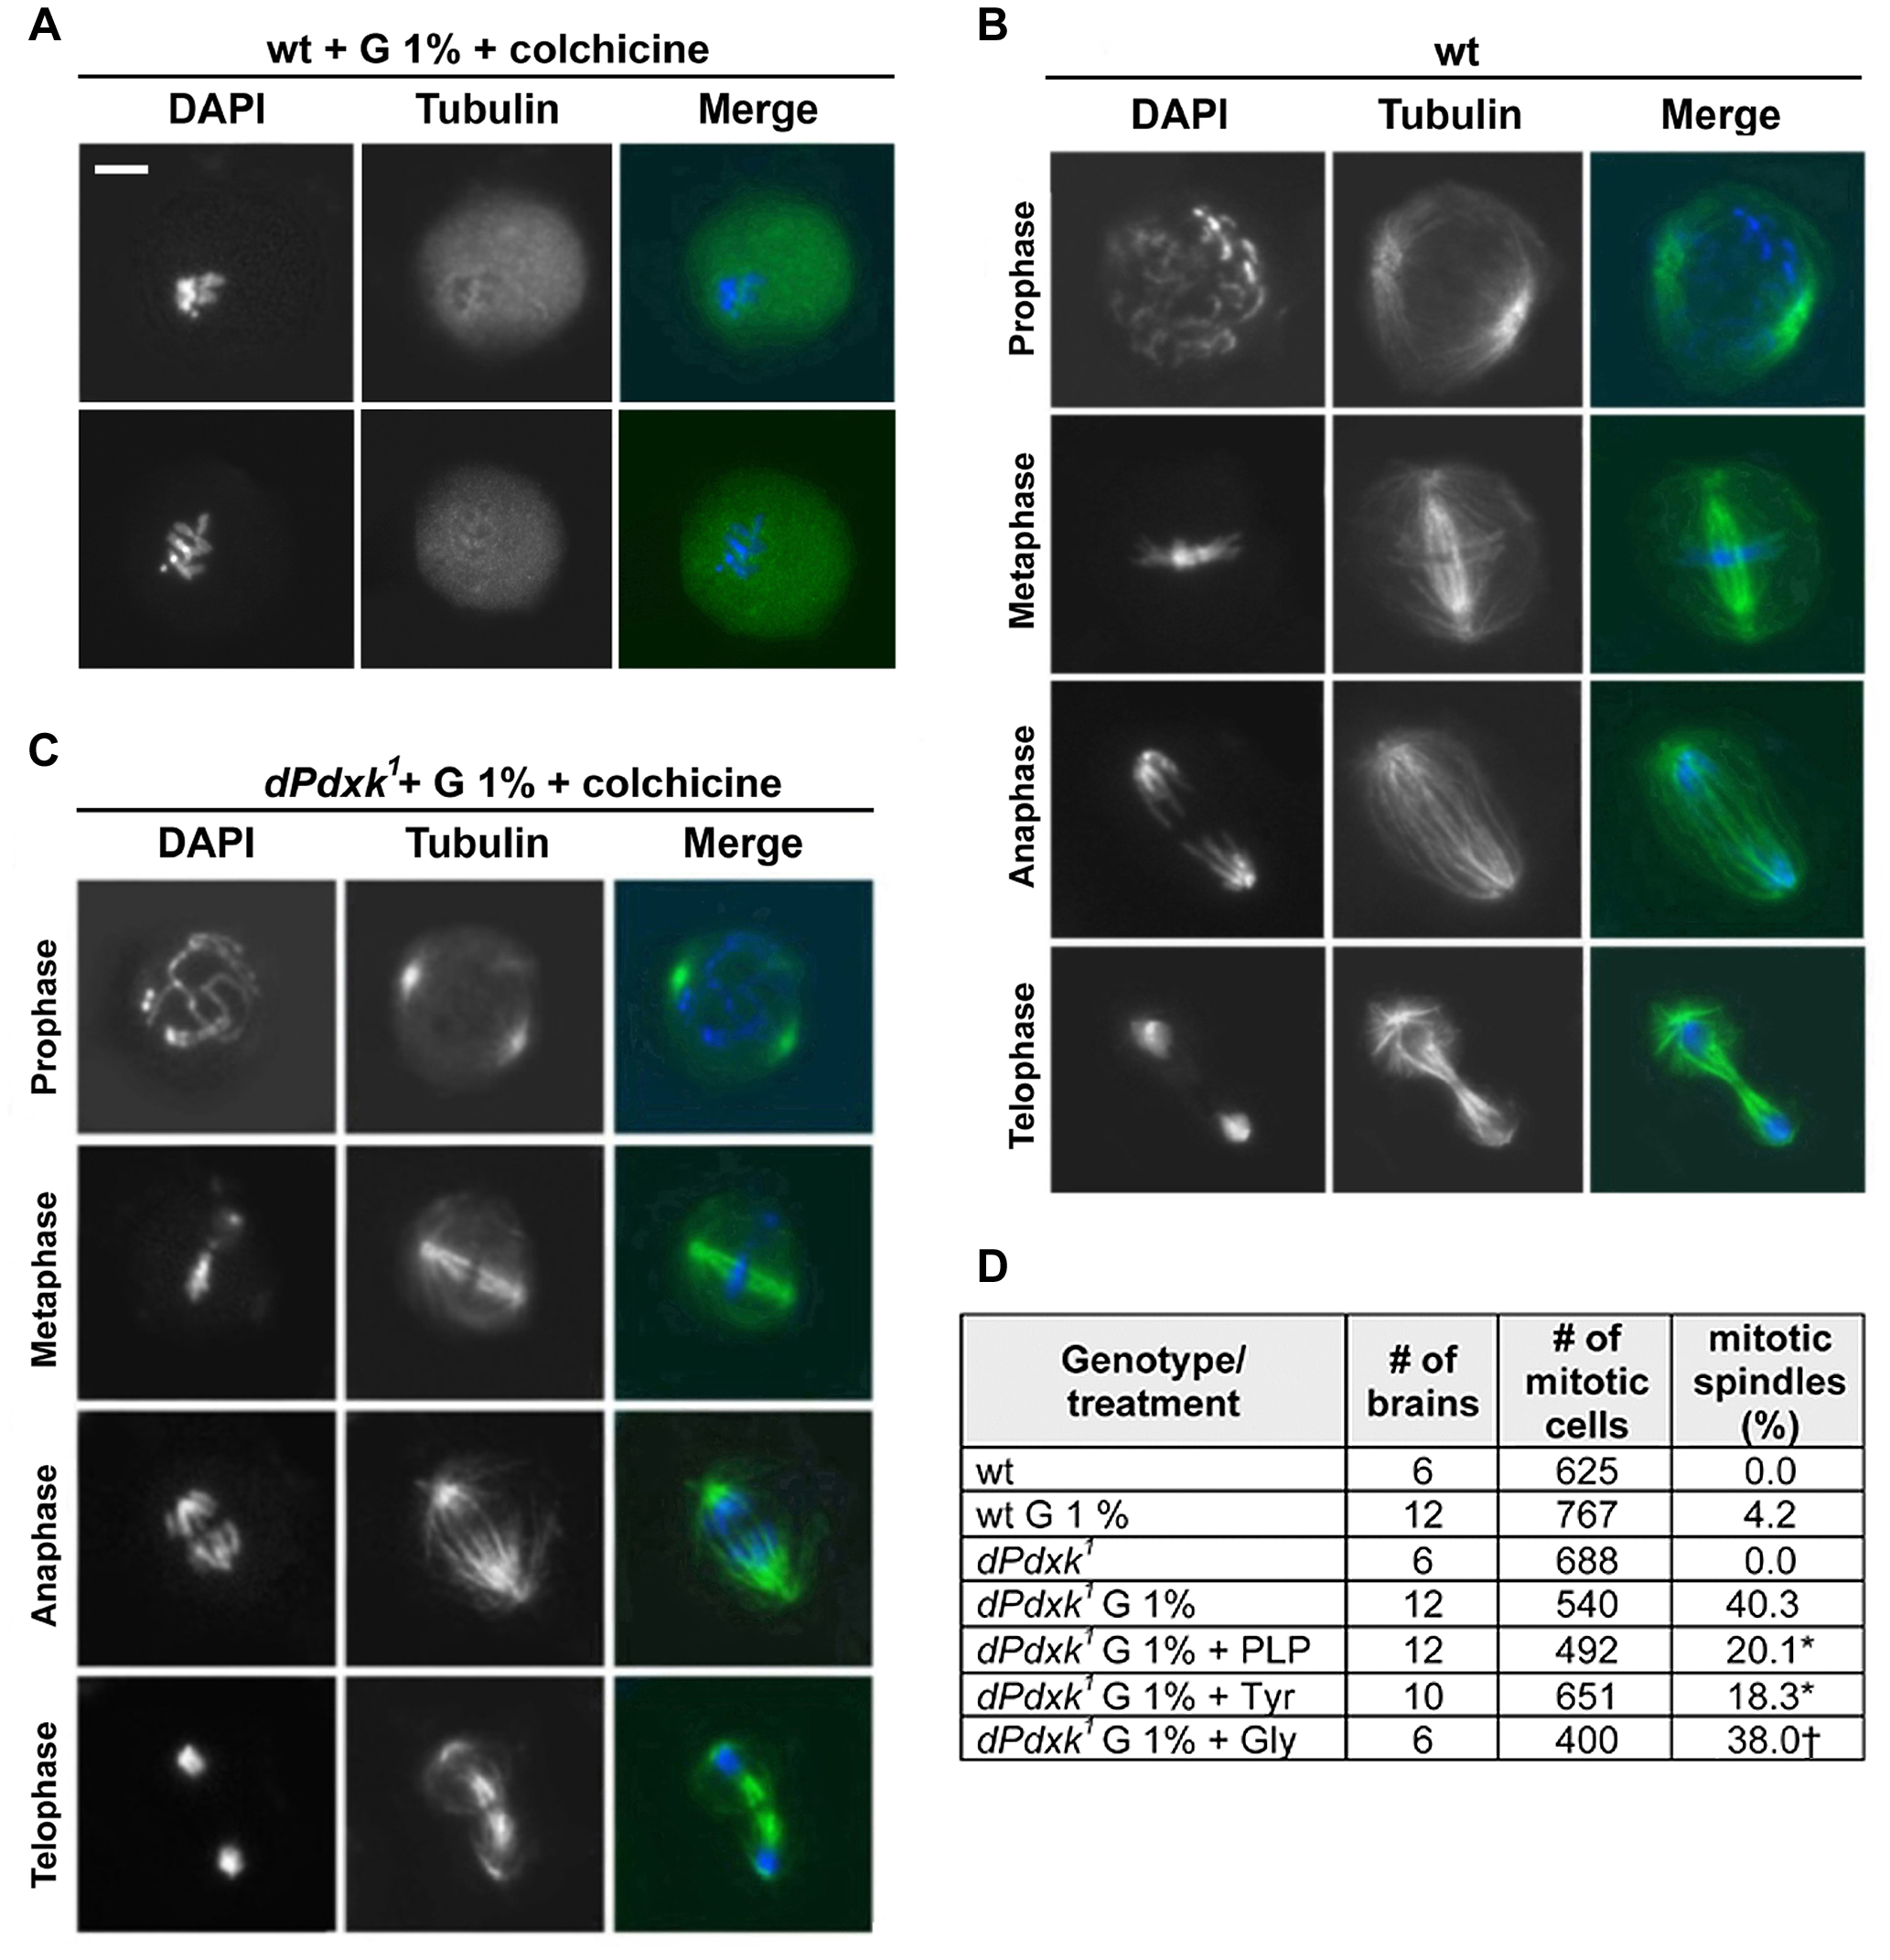 The spindles of glucose-treated <i>dPdxk</i> mutant brains are resistant to colchicine-induced depolymerization.